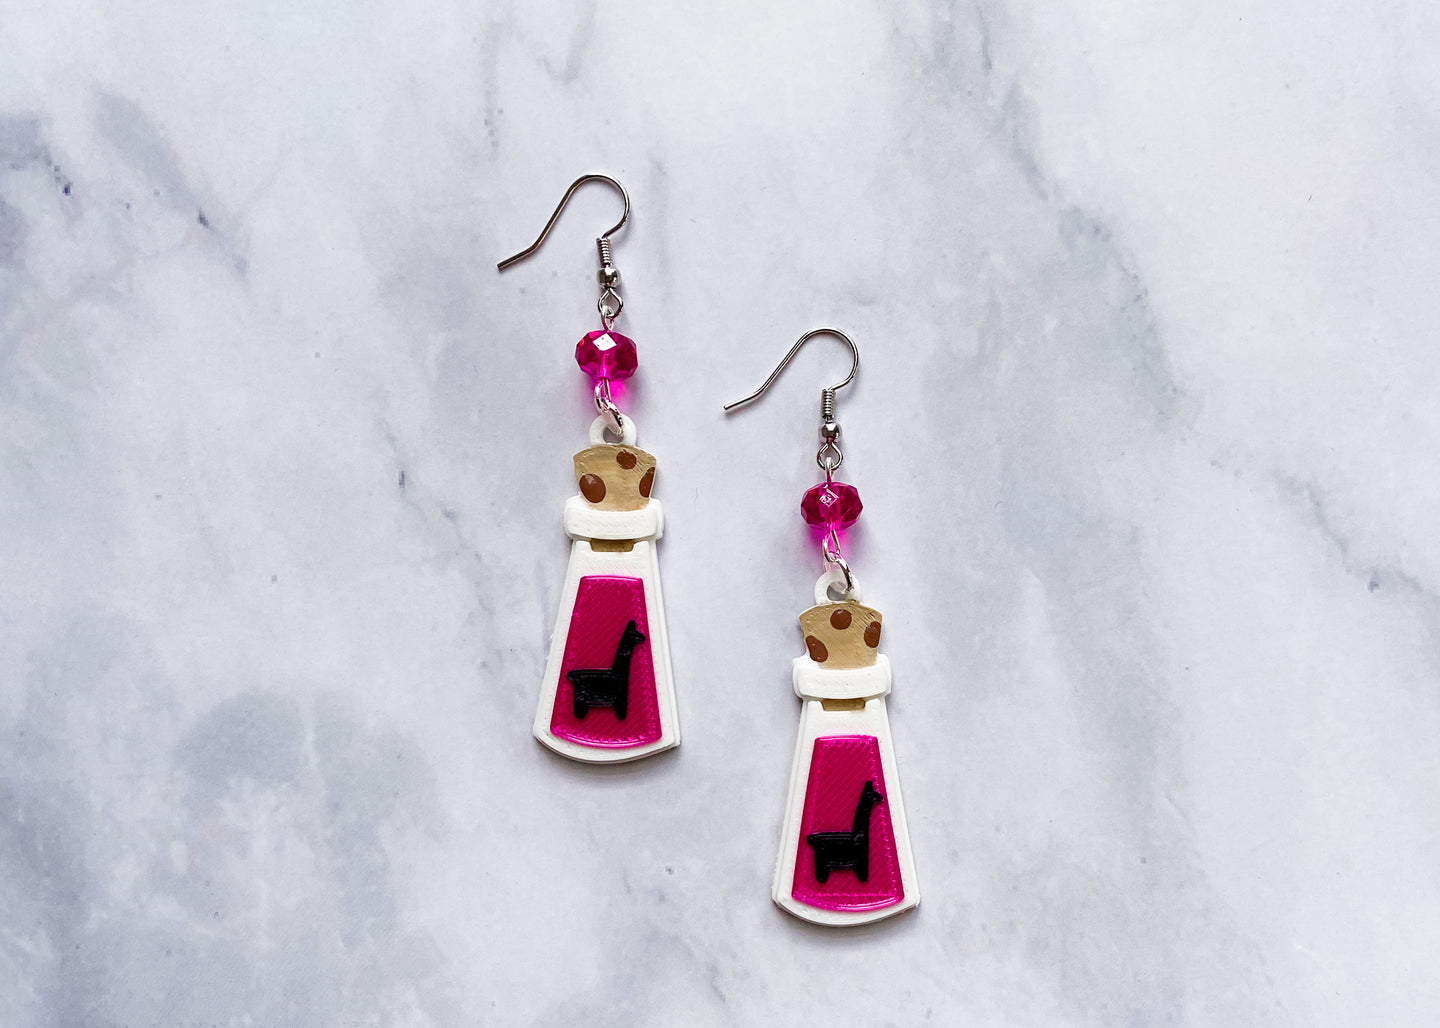 Llama Poison Earrings